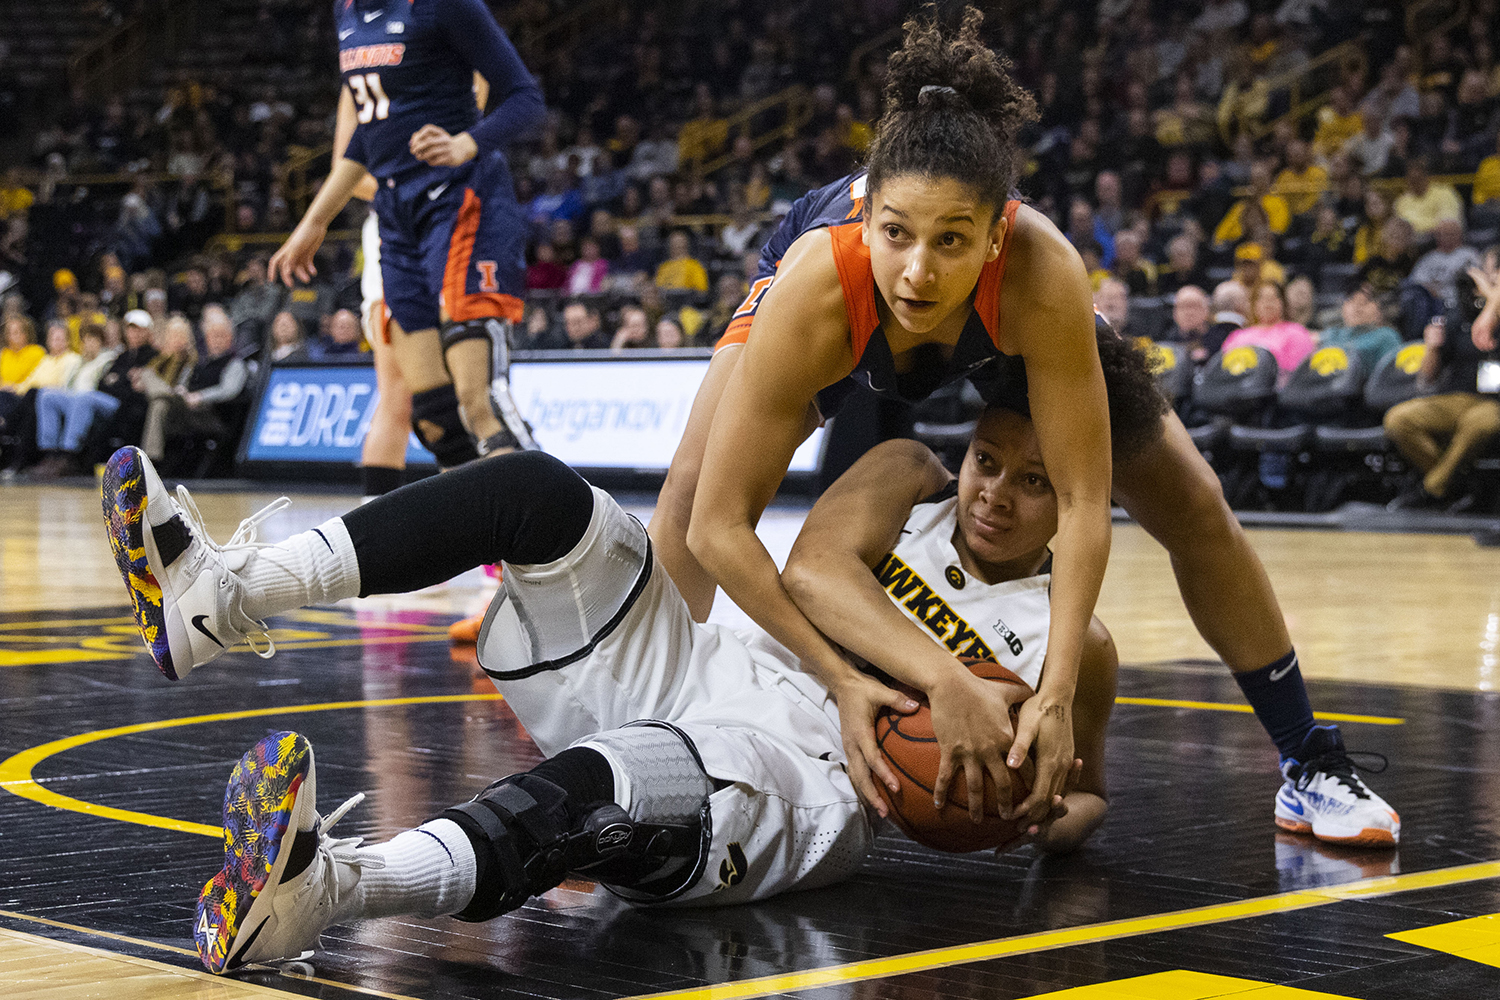 Iowa+guard+Tania+Davis+fights+for+control+of+the+ball+with+Illinois+guard+Jaelyne+Kirkpatrick+during+the+Iowa%2FIllinois+women%27s+basketball+game+at+Carver-Hawkeye+Arena+on+Thursday%2C+February+14%2C+2019.+The+Hawkeyes+defeated+the+Fighting+Illini%2C+88-66.+